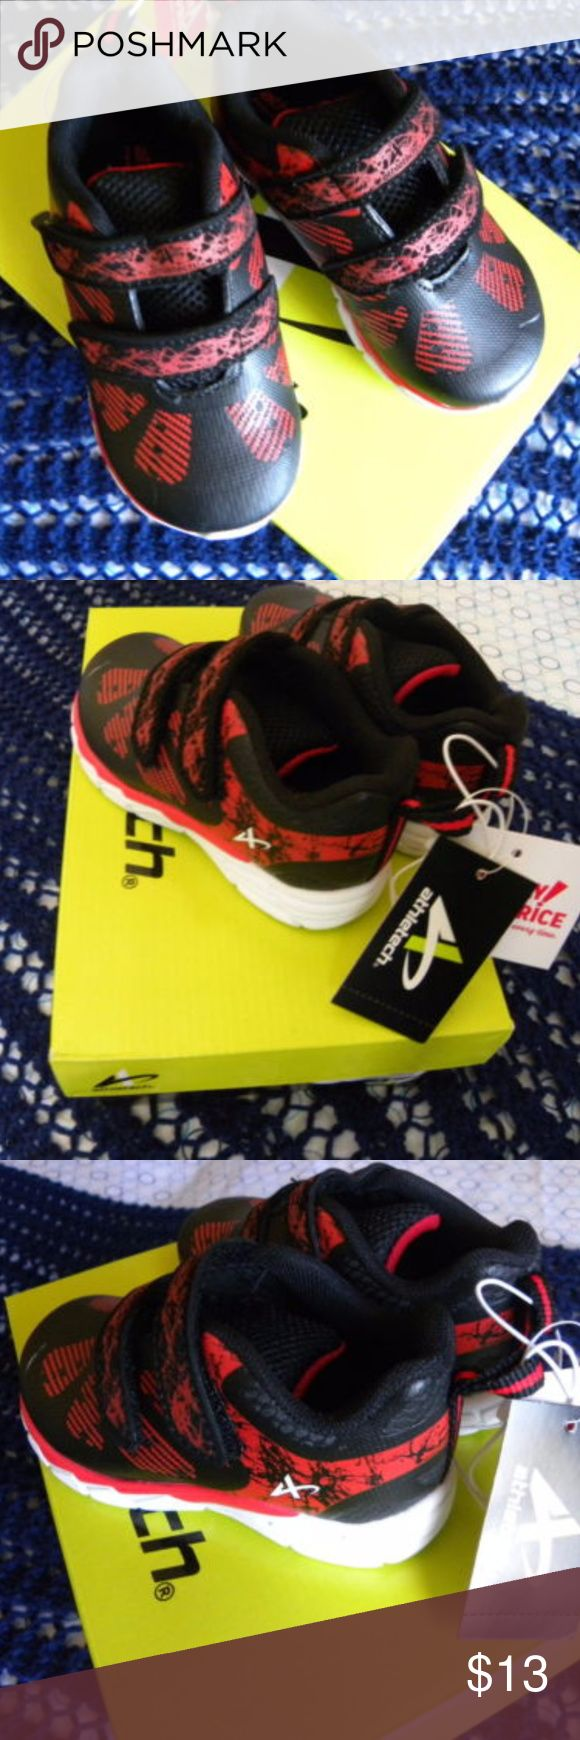 Baby Toddler Shoes Sneakers Size 7 Black&Red Athletech shoes athletic sneakers Kmart - Spider-Man colors  Size 7  Baby Toddler Black & Red  Black and red color, great tennis shoes for a baby boy.    It has tags and box Any comment or doubt please let me know Athletech Shoes Baby & Walker